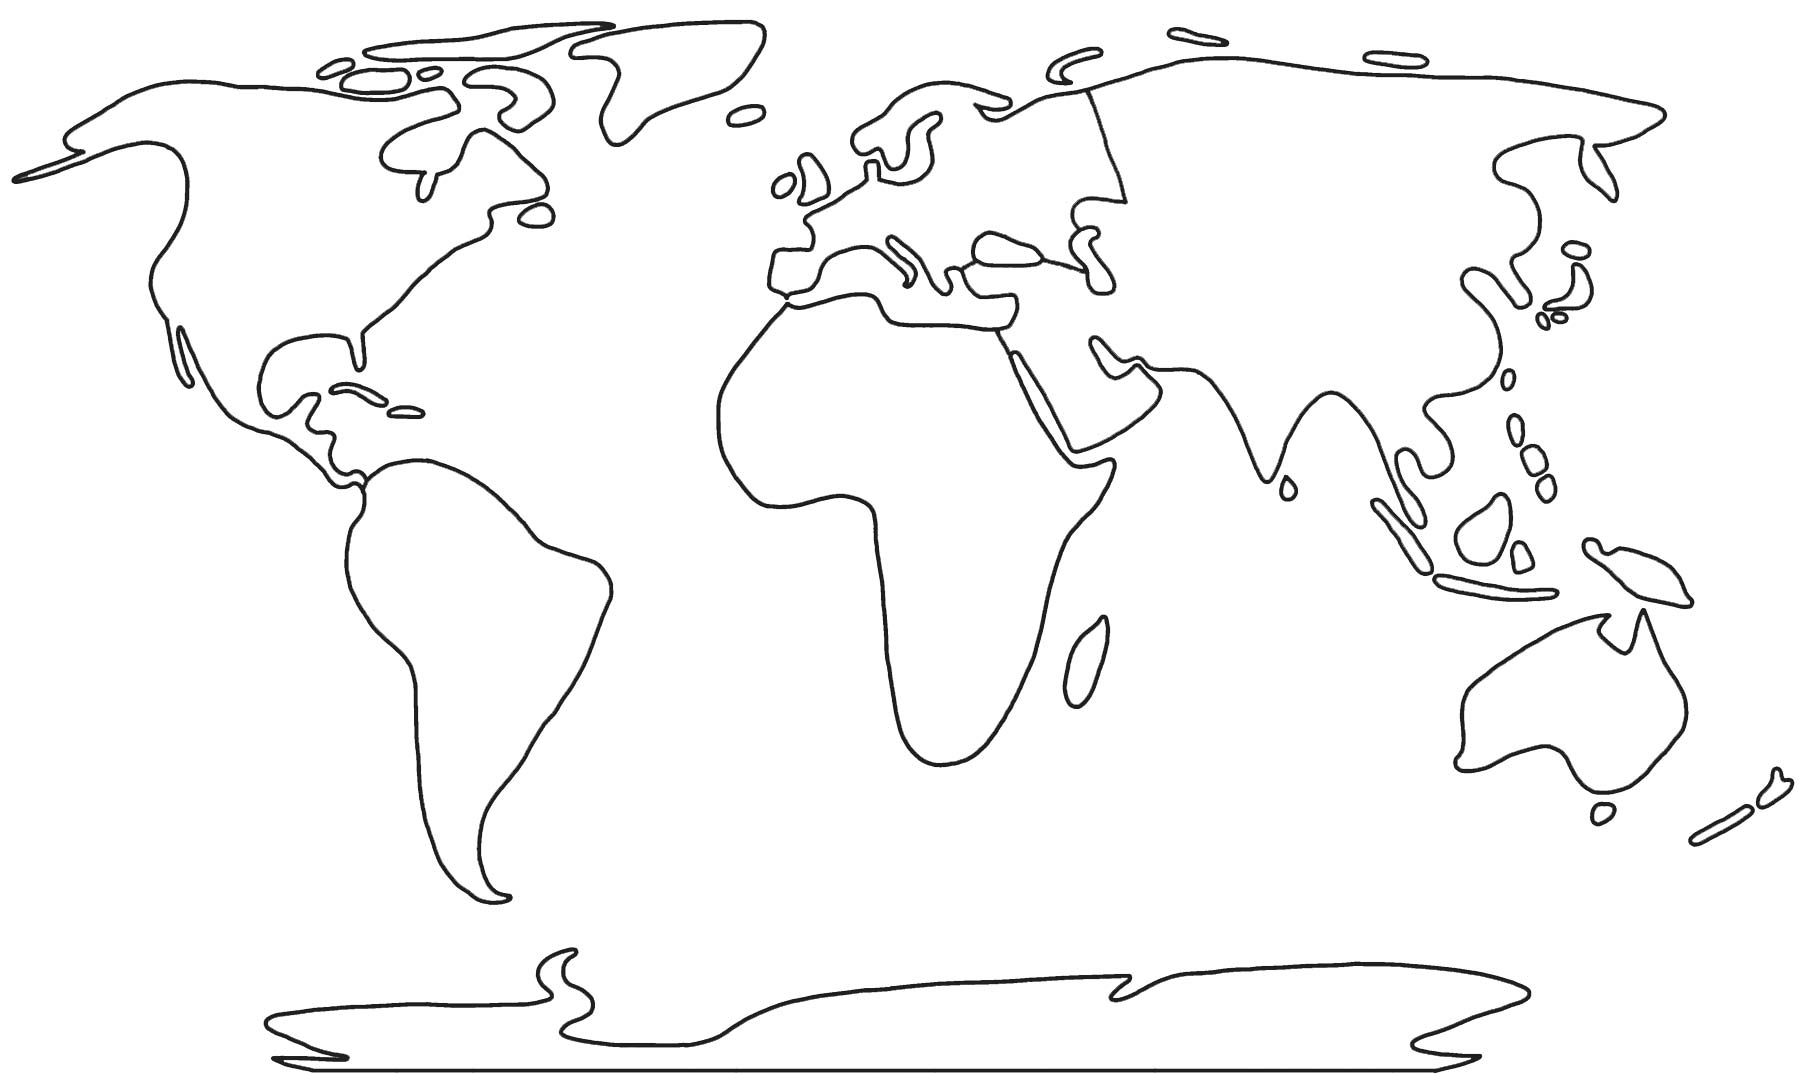 Black and White outline of the world's continents